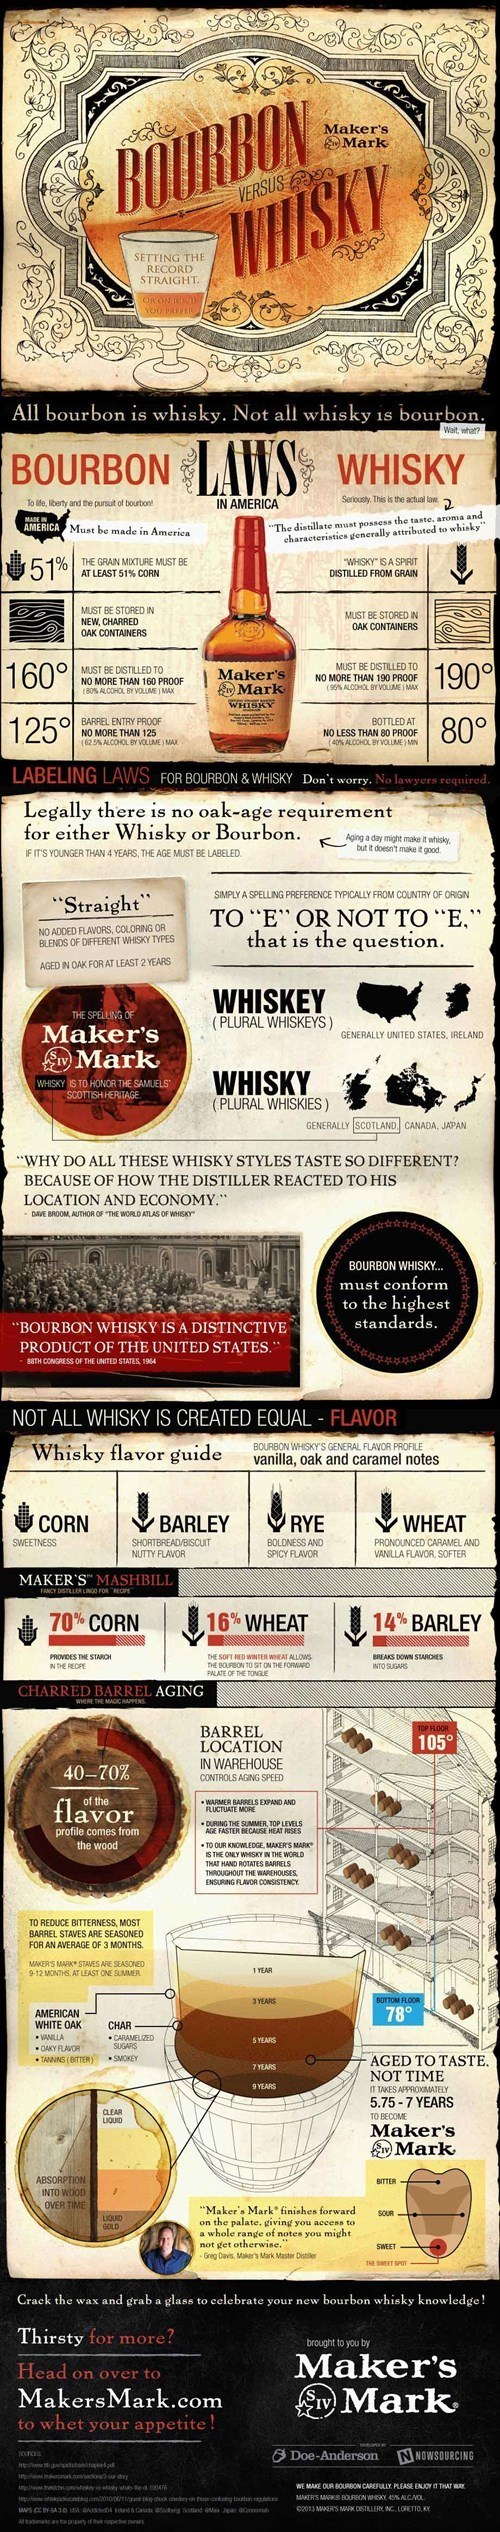 bourbon-vs-whiskey